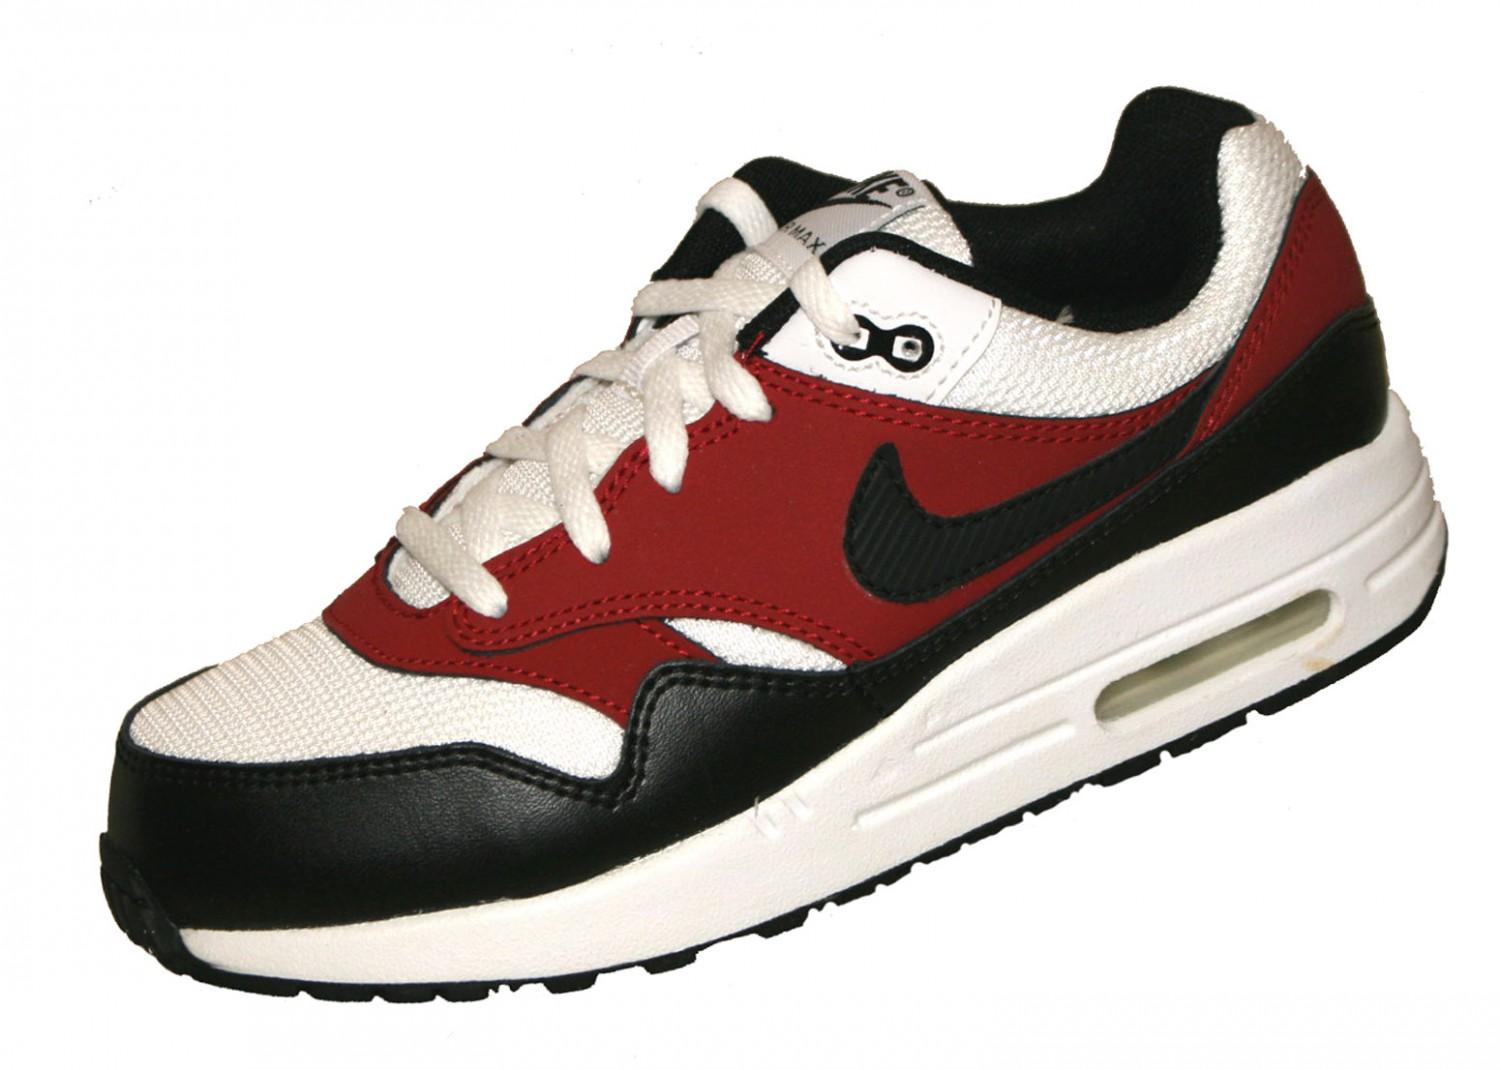 nike air max 1 kinder 609370 mehrfarbig 117 sneaker schuhe. Black Bedroom Furniture Sets. Home Design Ideas